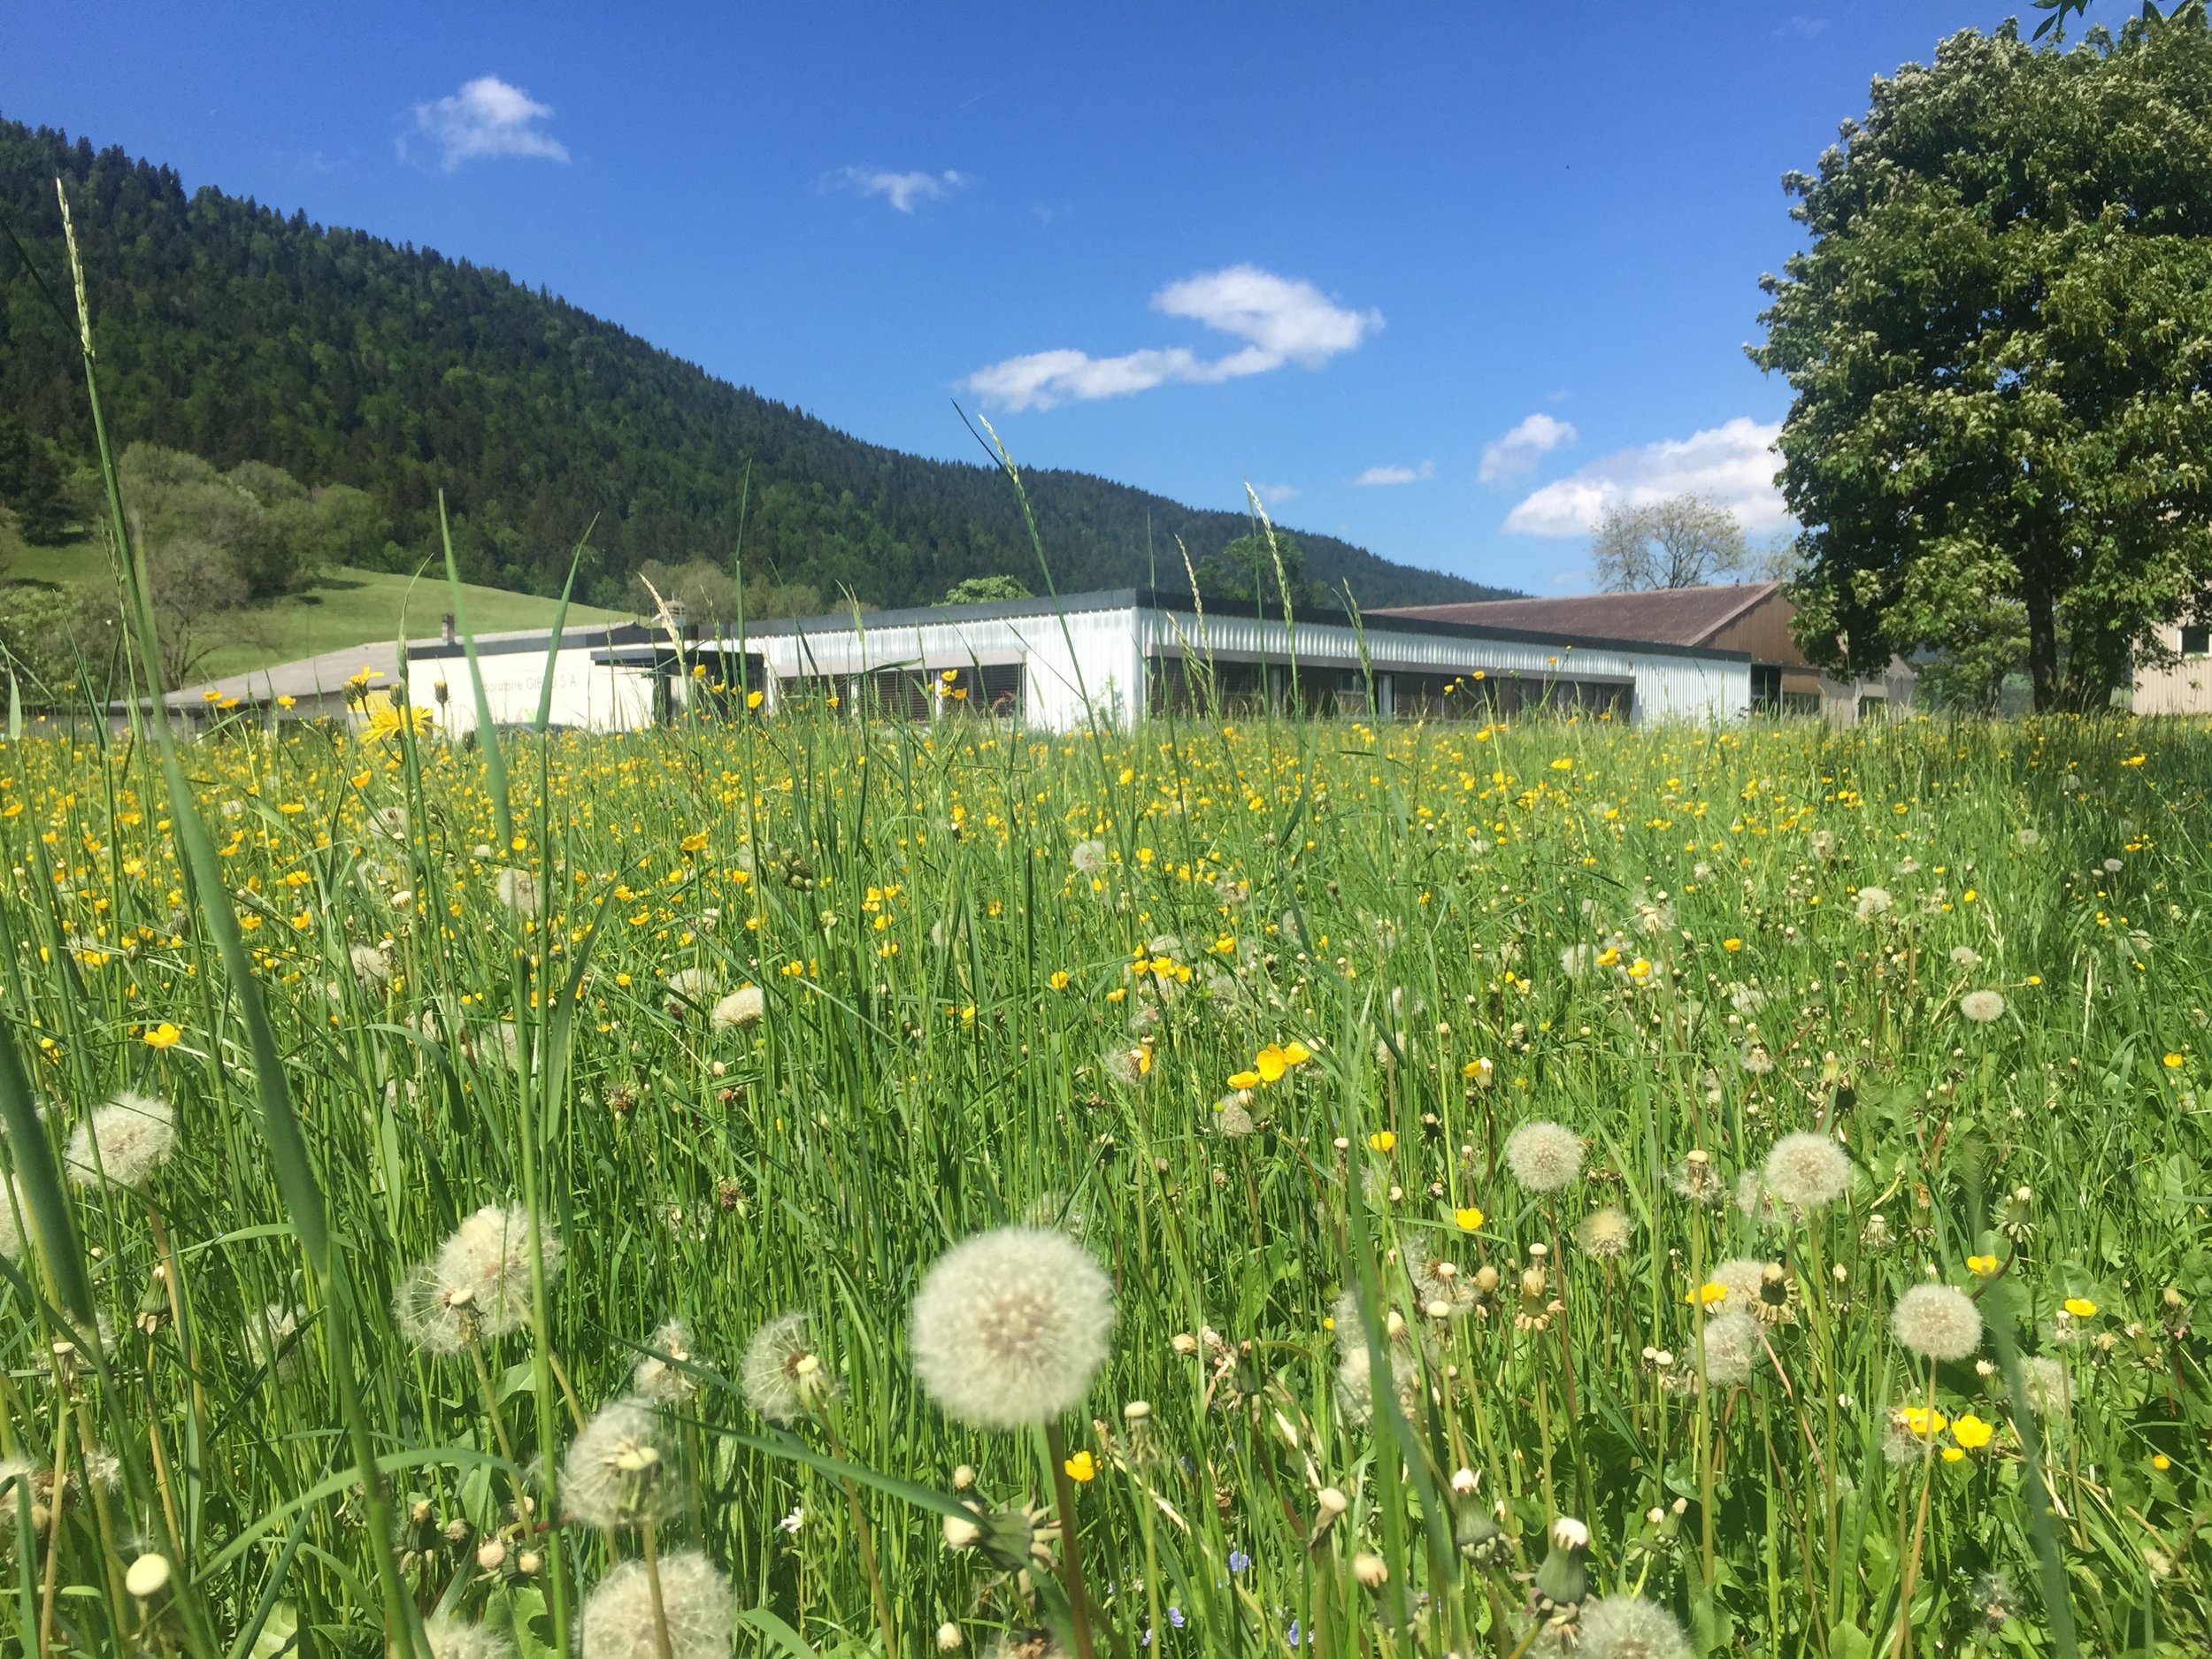 gibro-in-spring-with-dandelion-field.JPG